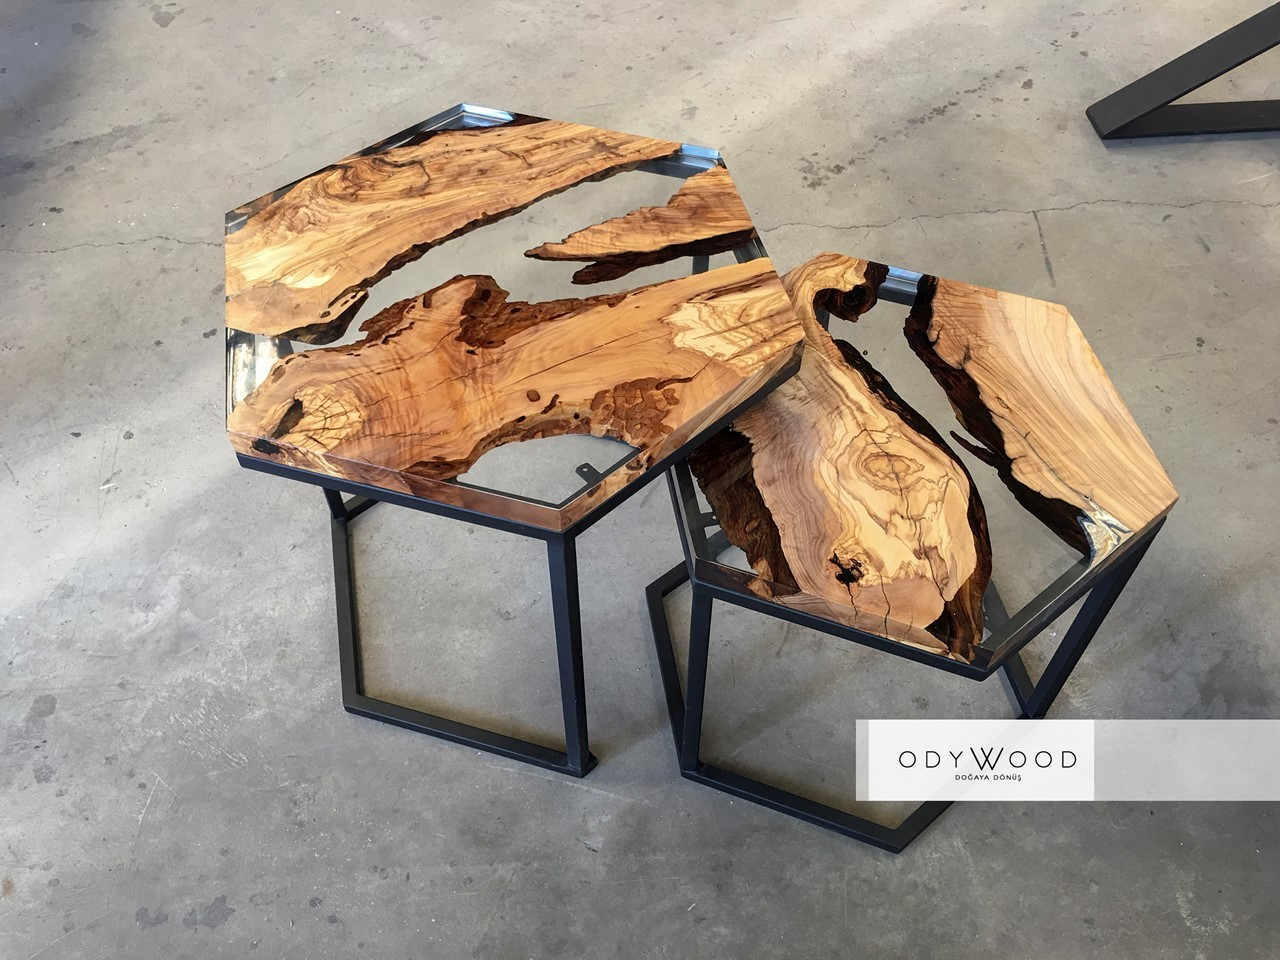 Hexagon Epoxy Resin Olive Wood Coffee Table'in resmi